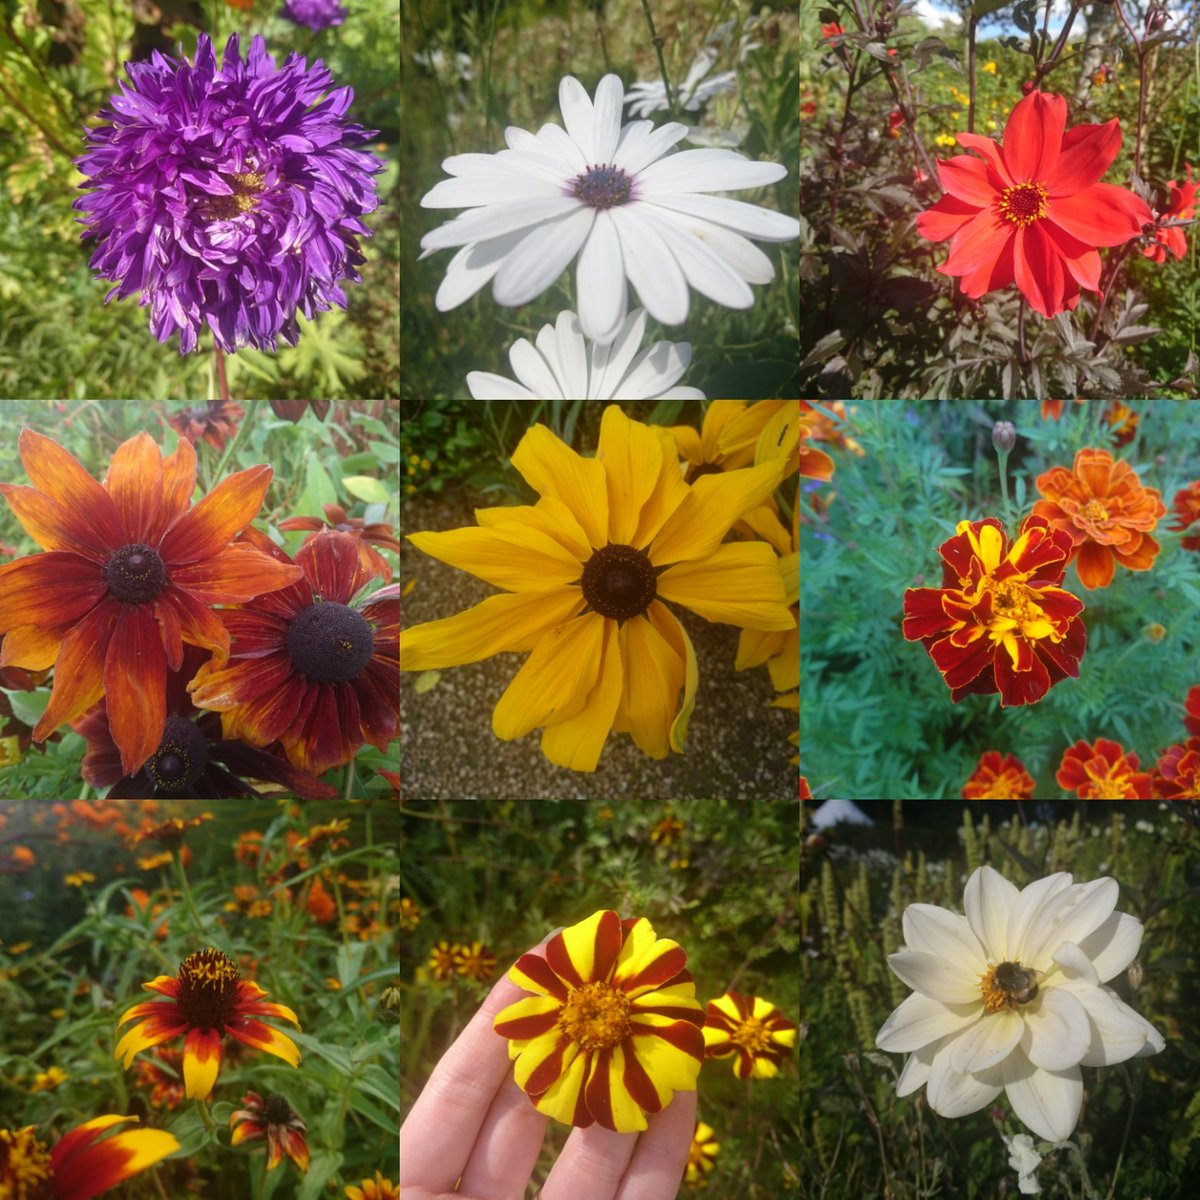 RT @SLeguil It's all about daisies at the moment in @LoseleyPark...from the first asters, to colourful dahlias, bright marigolds and autumnal rudbeckias